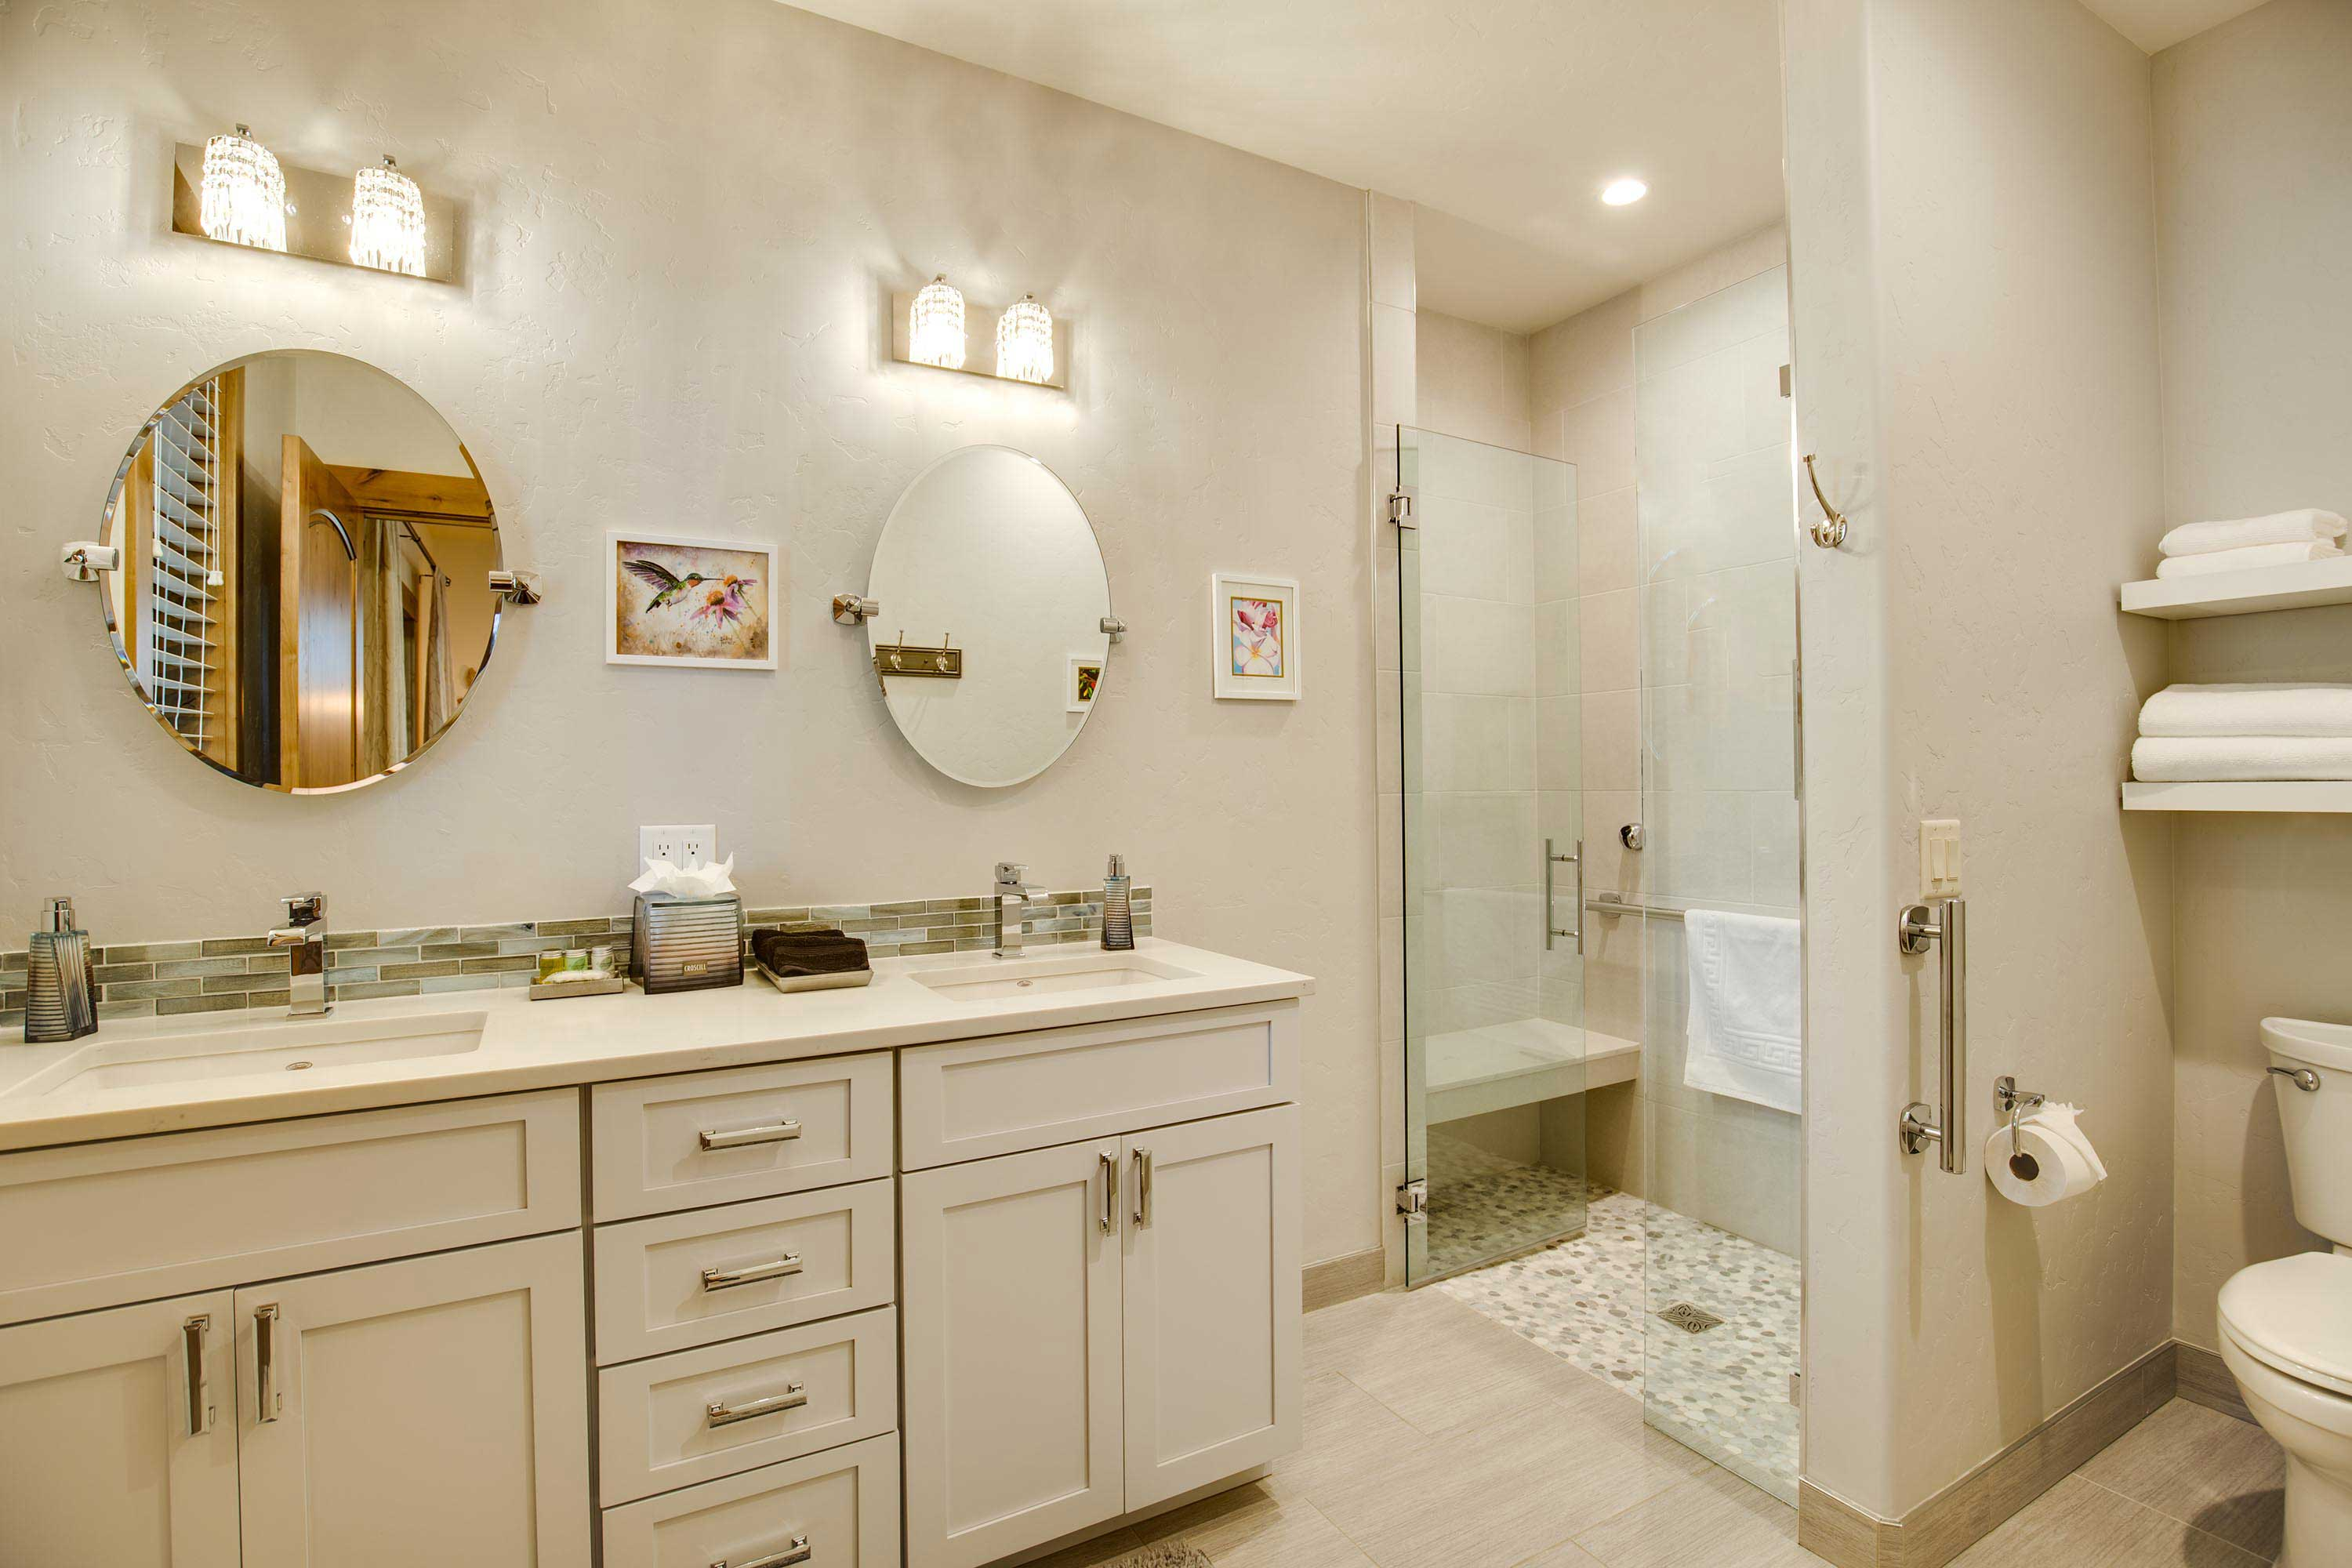 Rinse off the day in this lavish bathroom.